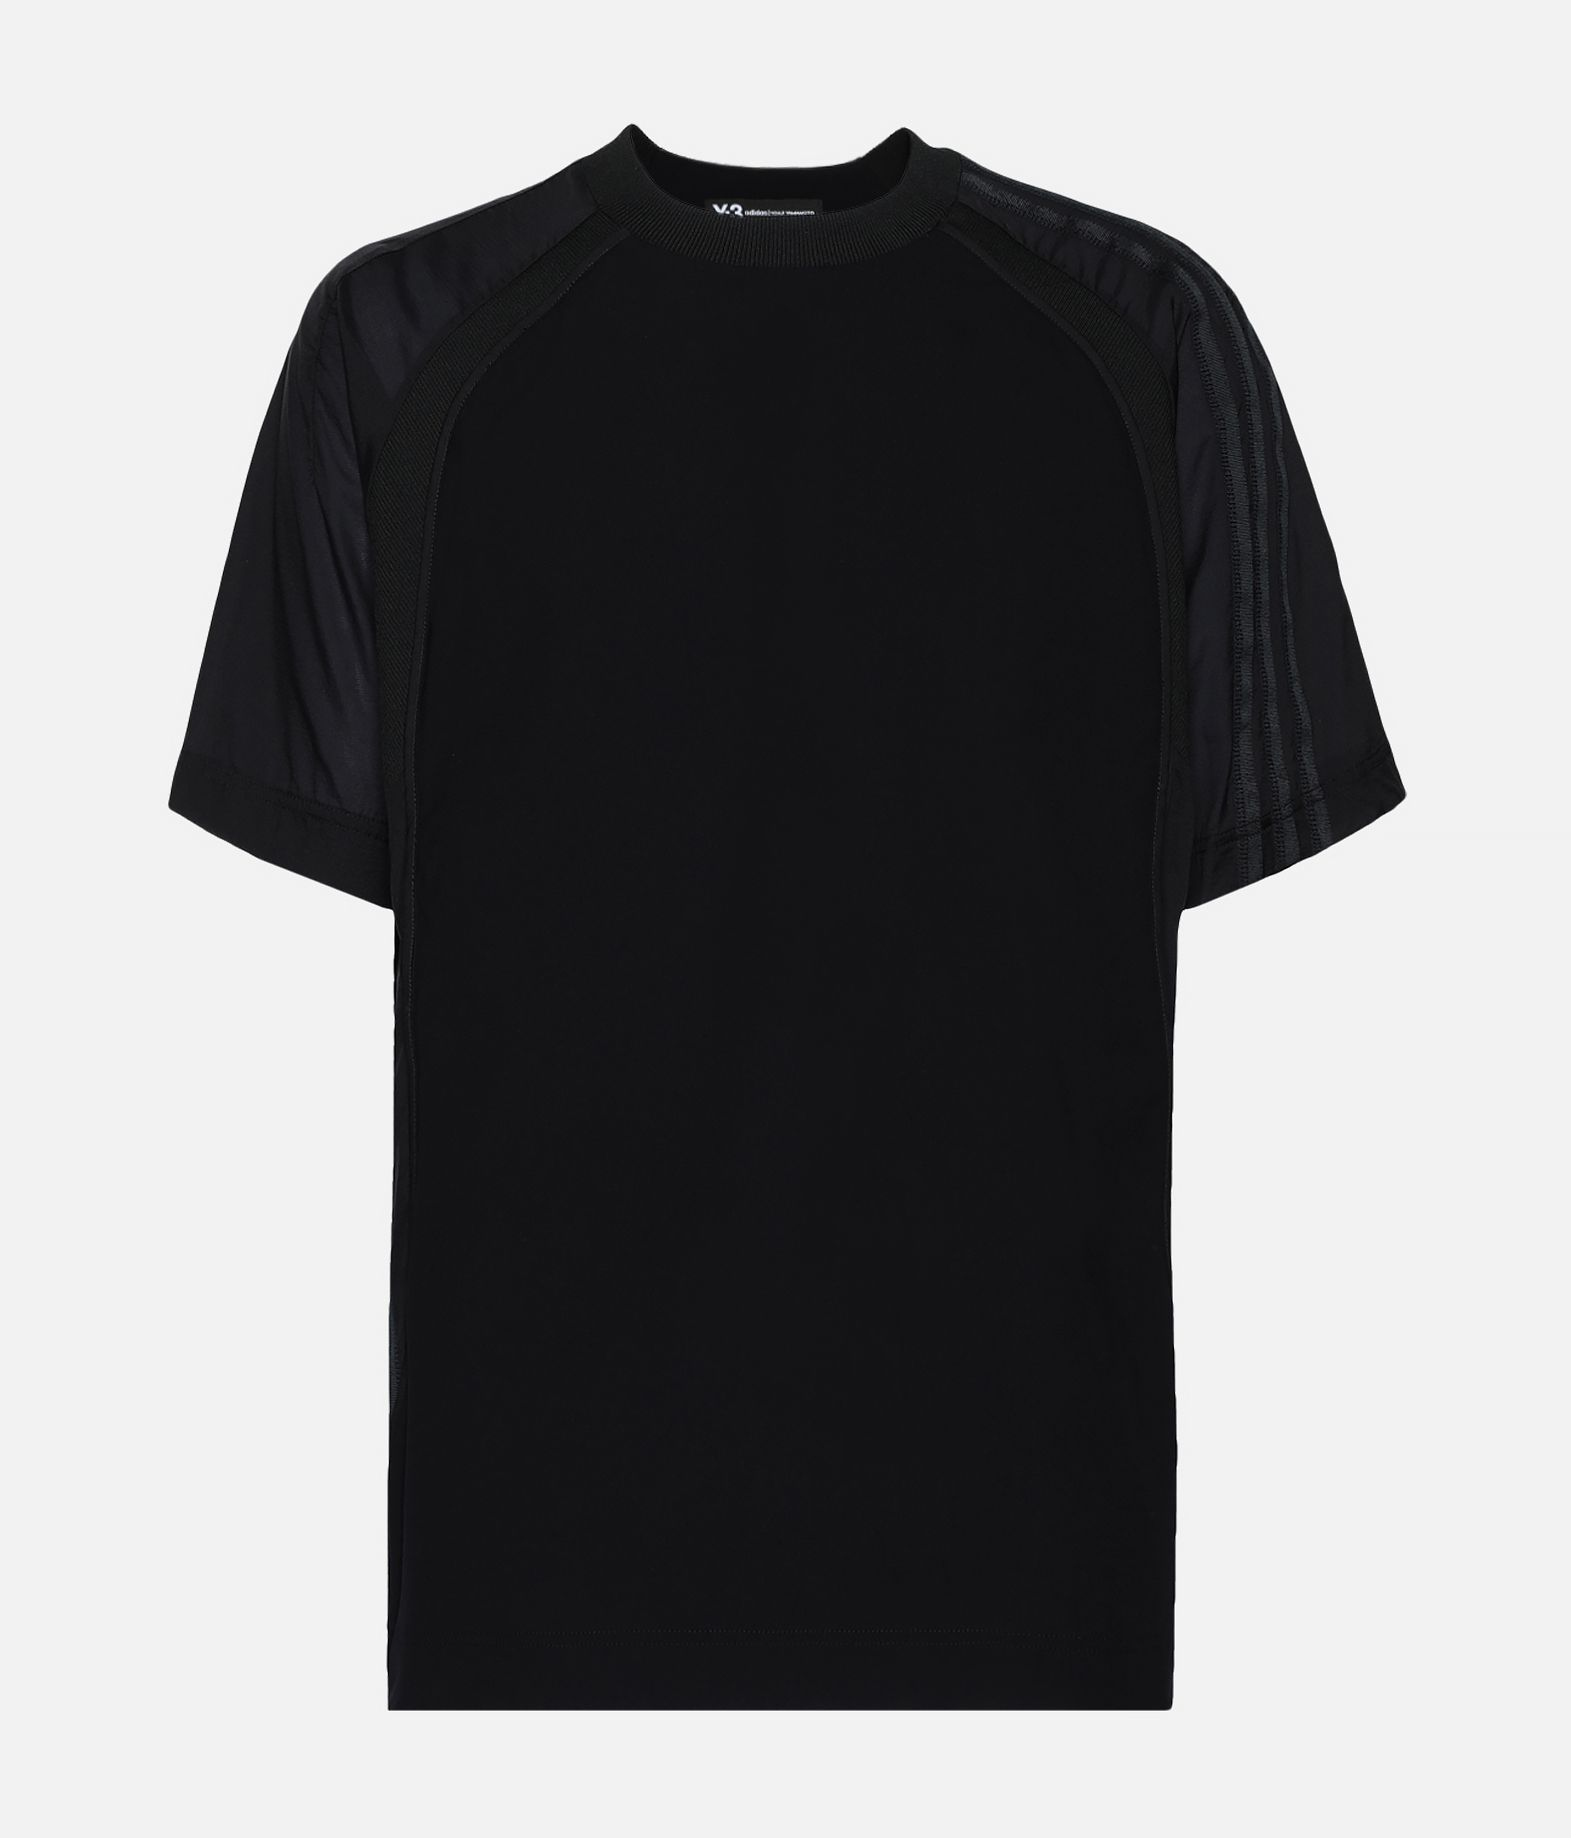 Y-3 Y-3 3-Stripes Material Mix Tee Short sleeve t-shirt Man f